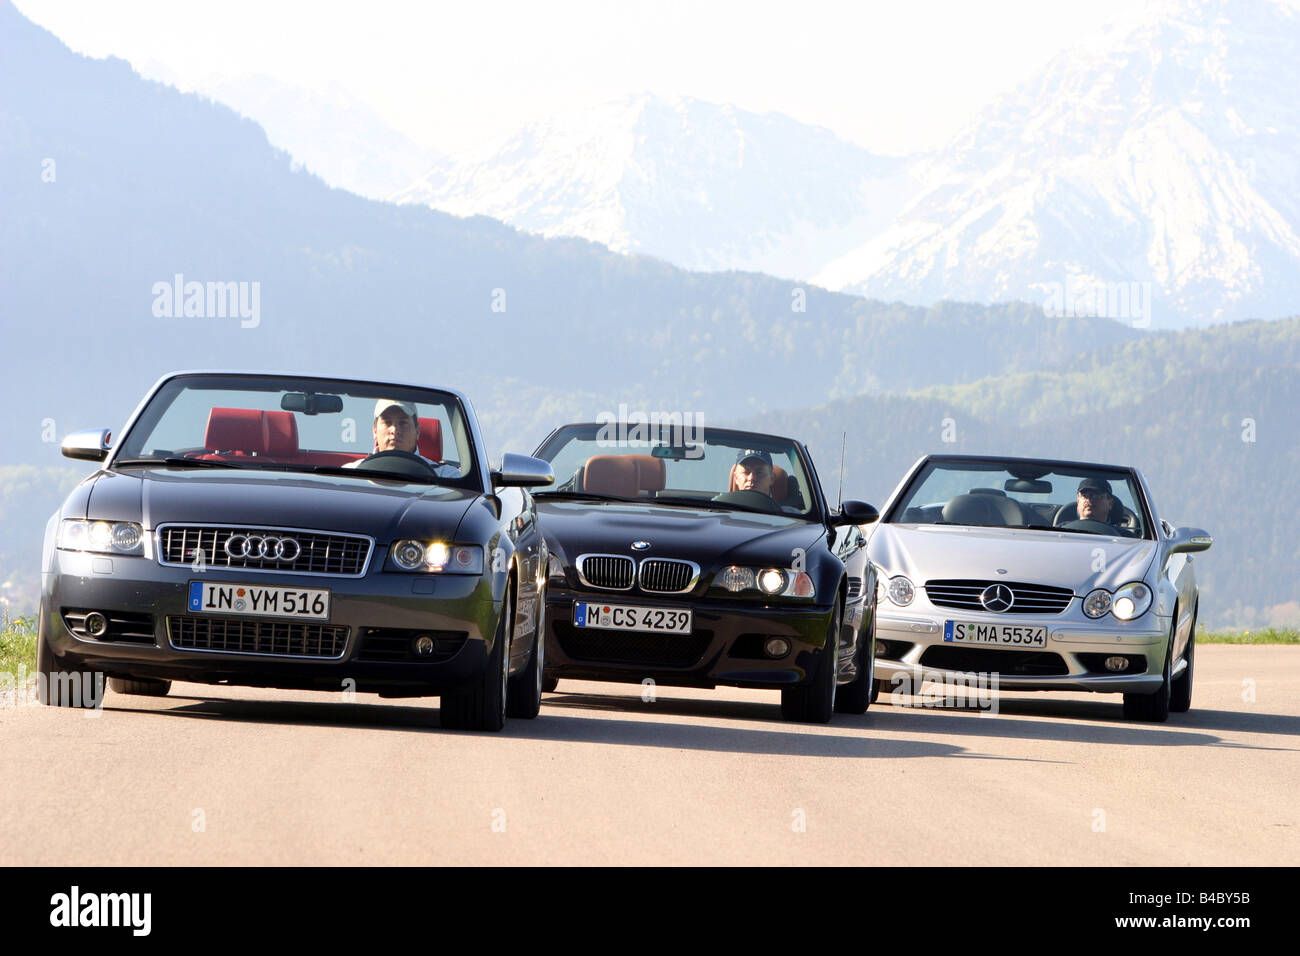 Car, group picture Convertibles, BMW M3, Audi S4, Mercedes CLK 55 AMG, landsapprox.e, Summer, photographer: Hans - Stock Image